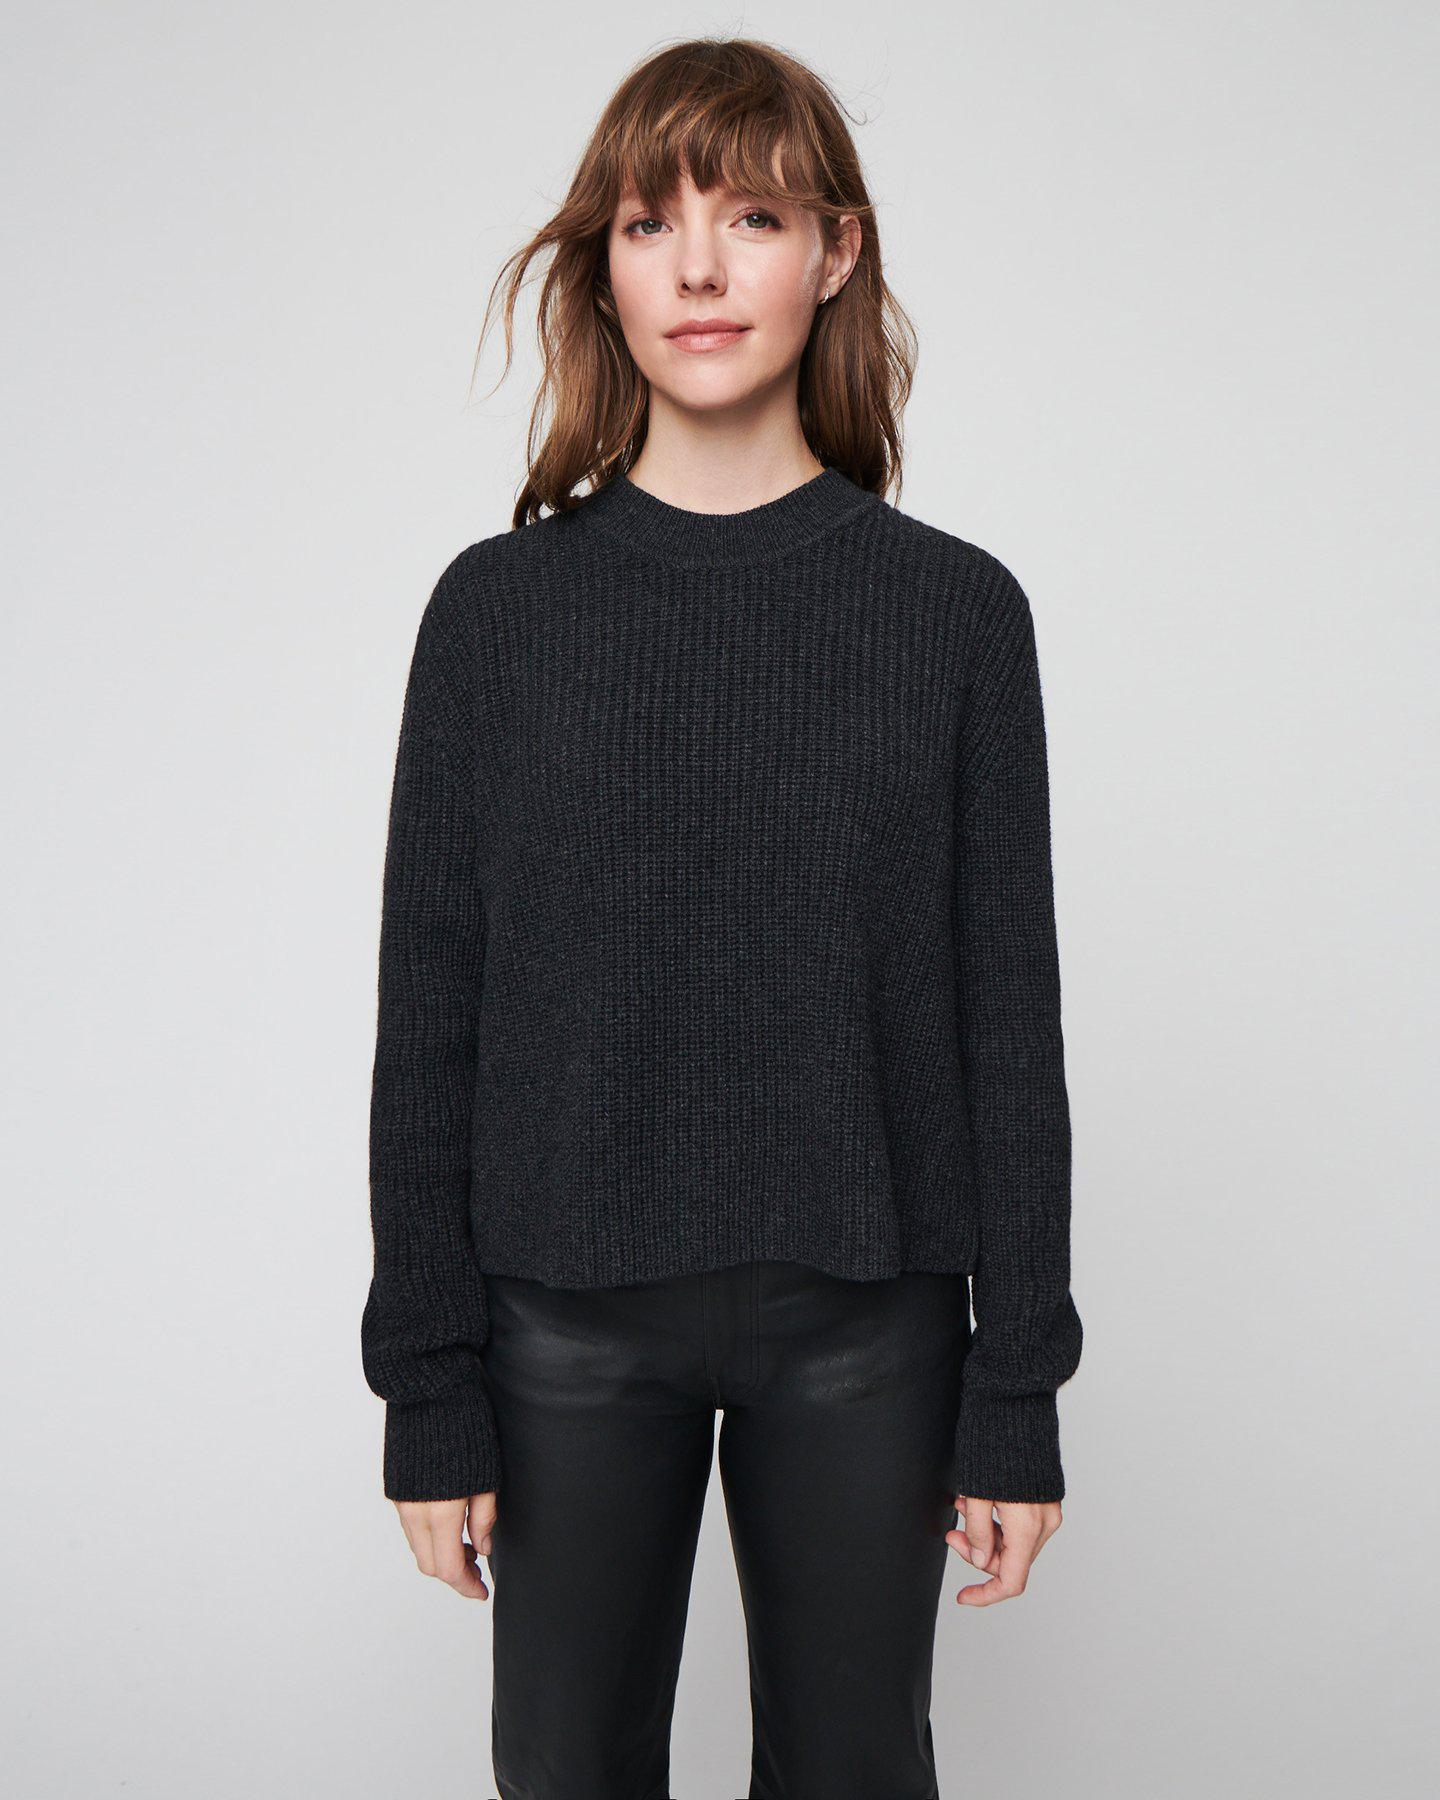 Women's Cashmere Ribbed Mock Neck in Charcoal